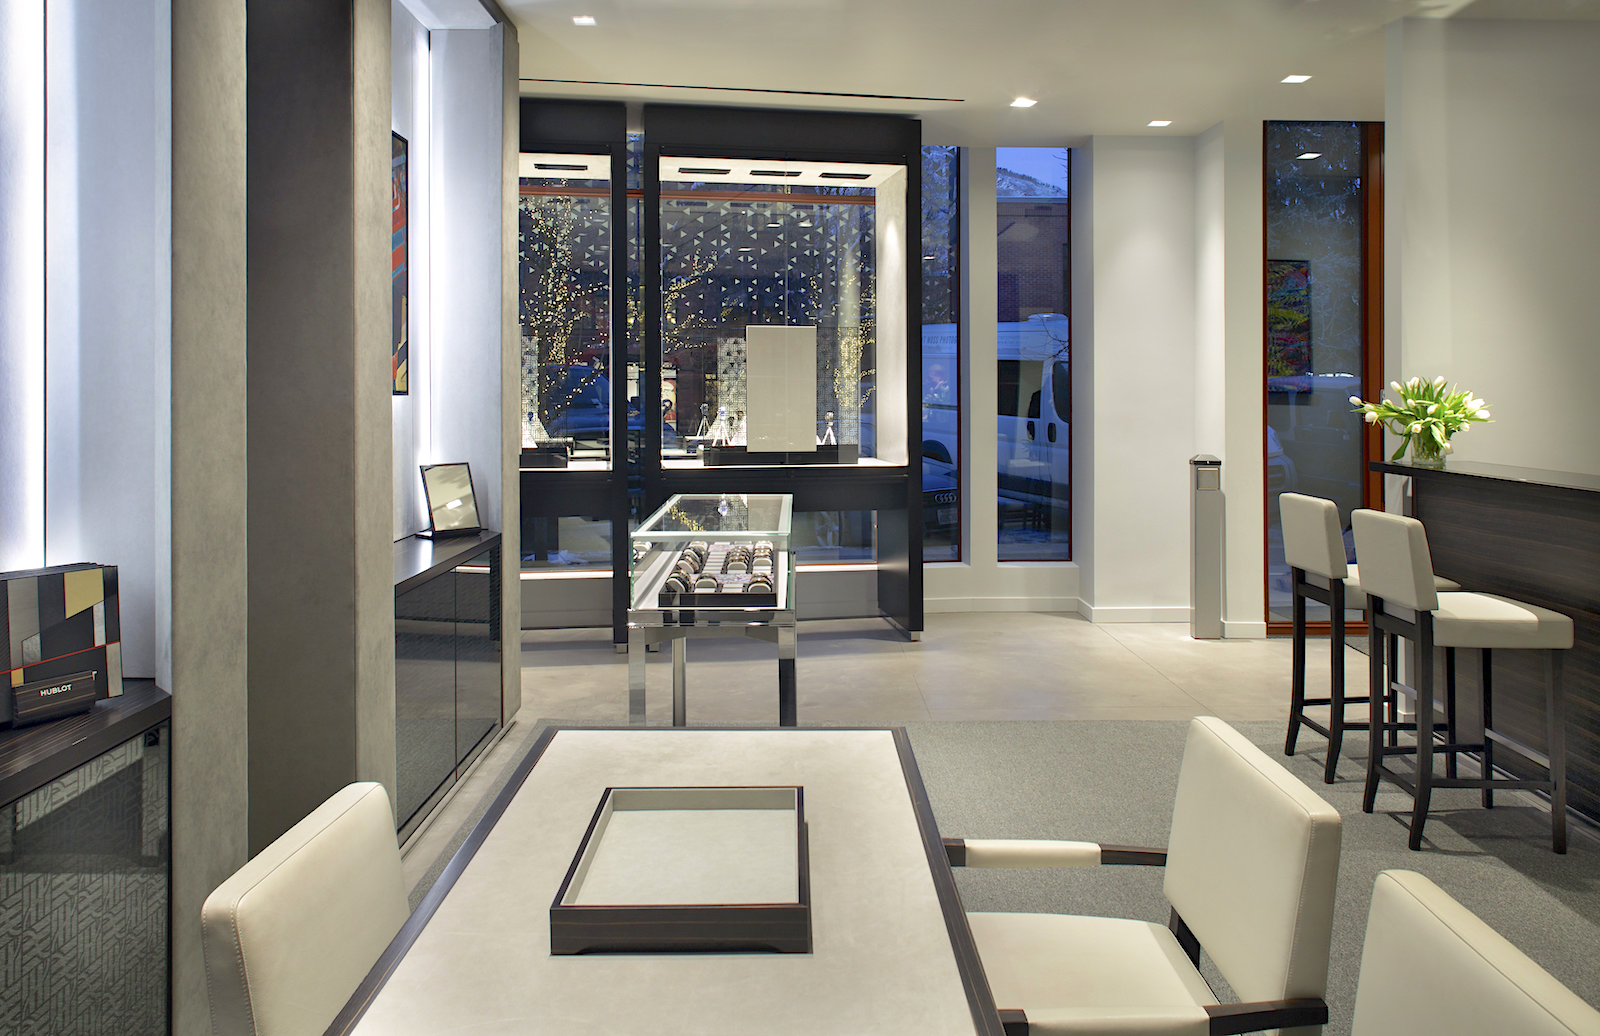 Boutique Hublot de Aspen - interior 2